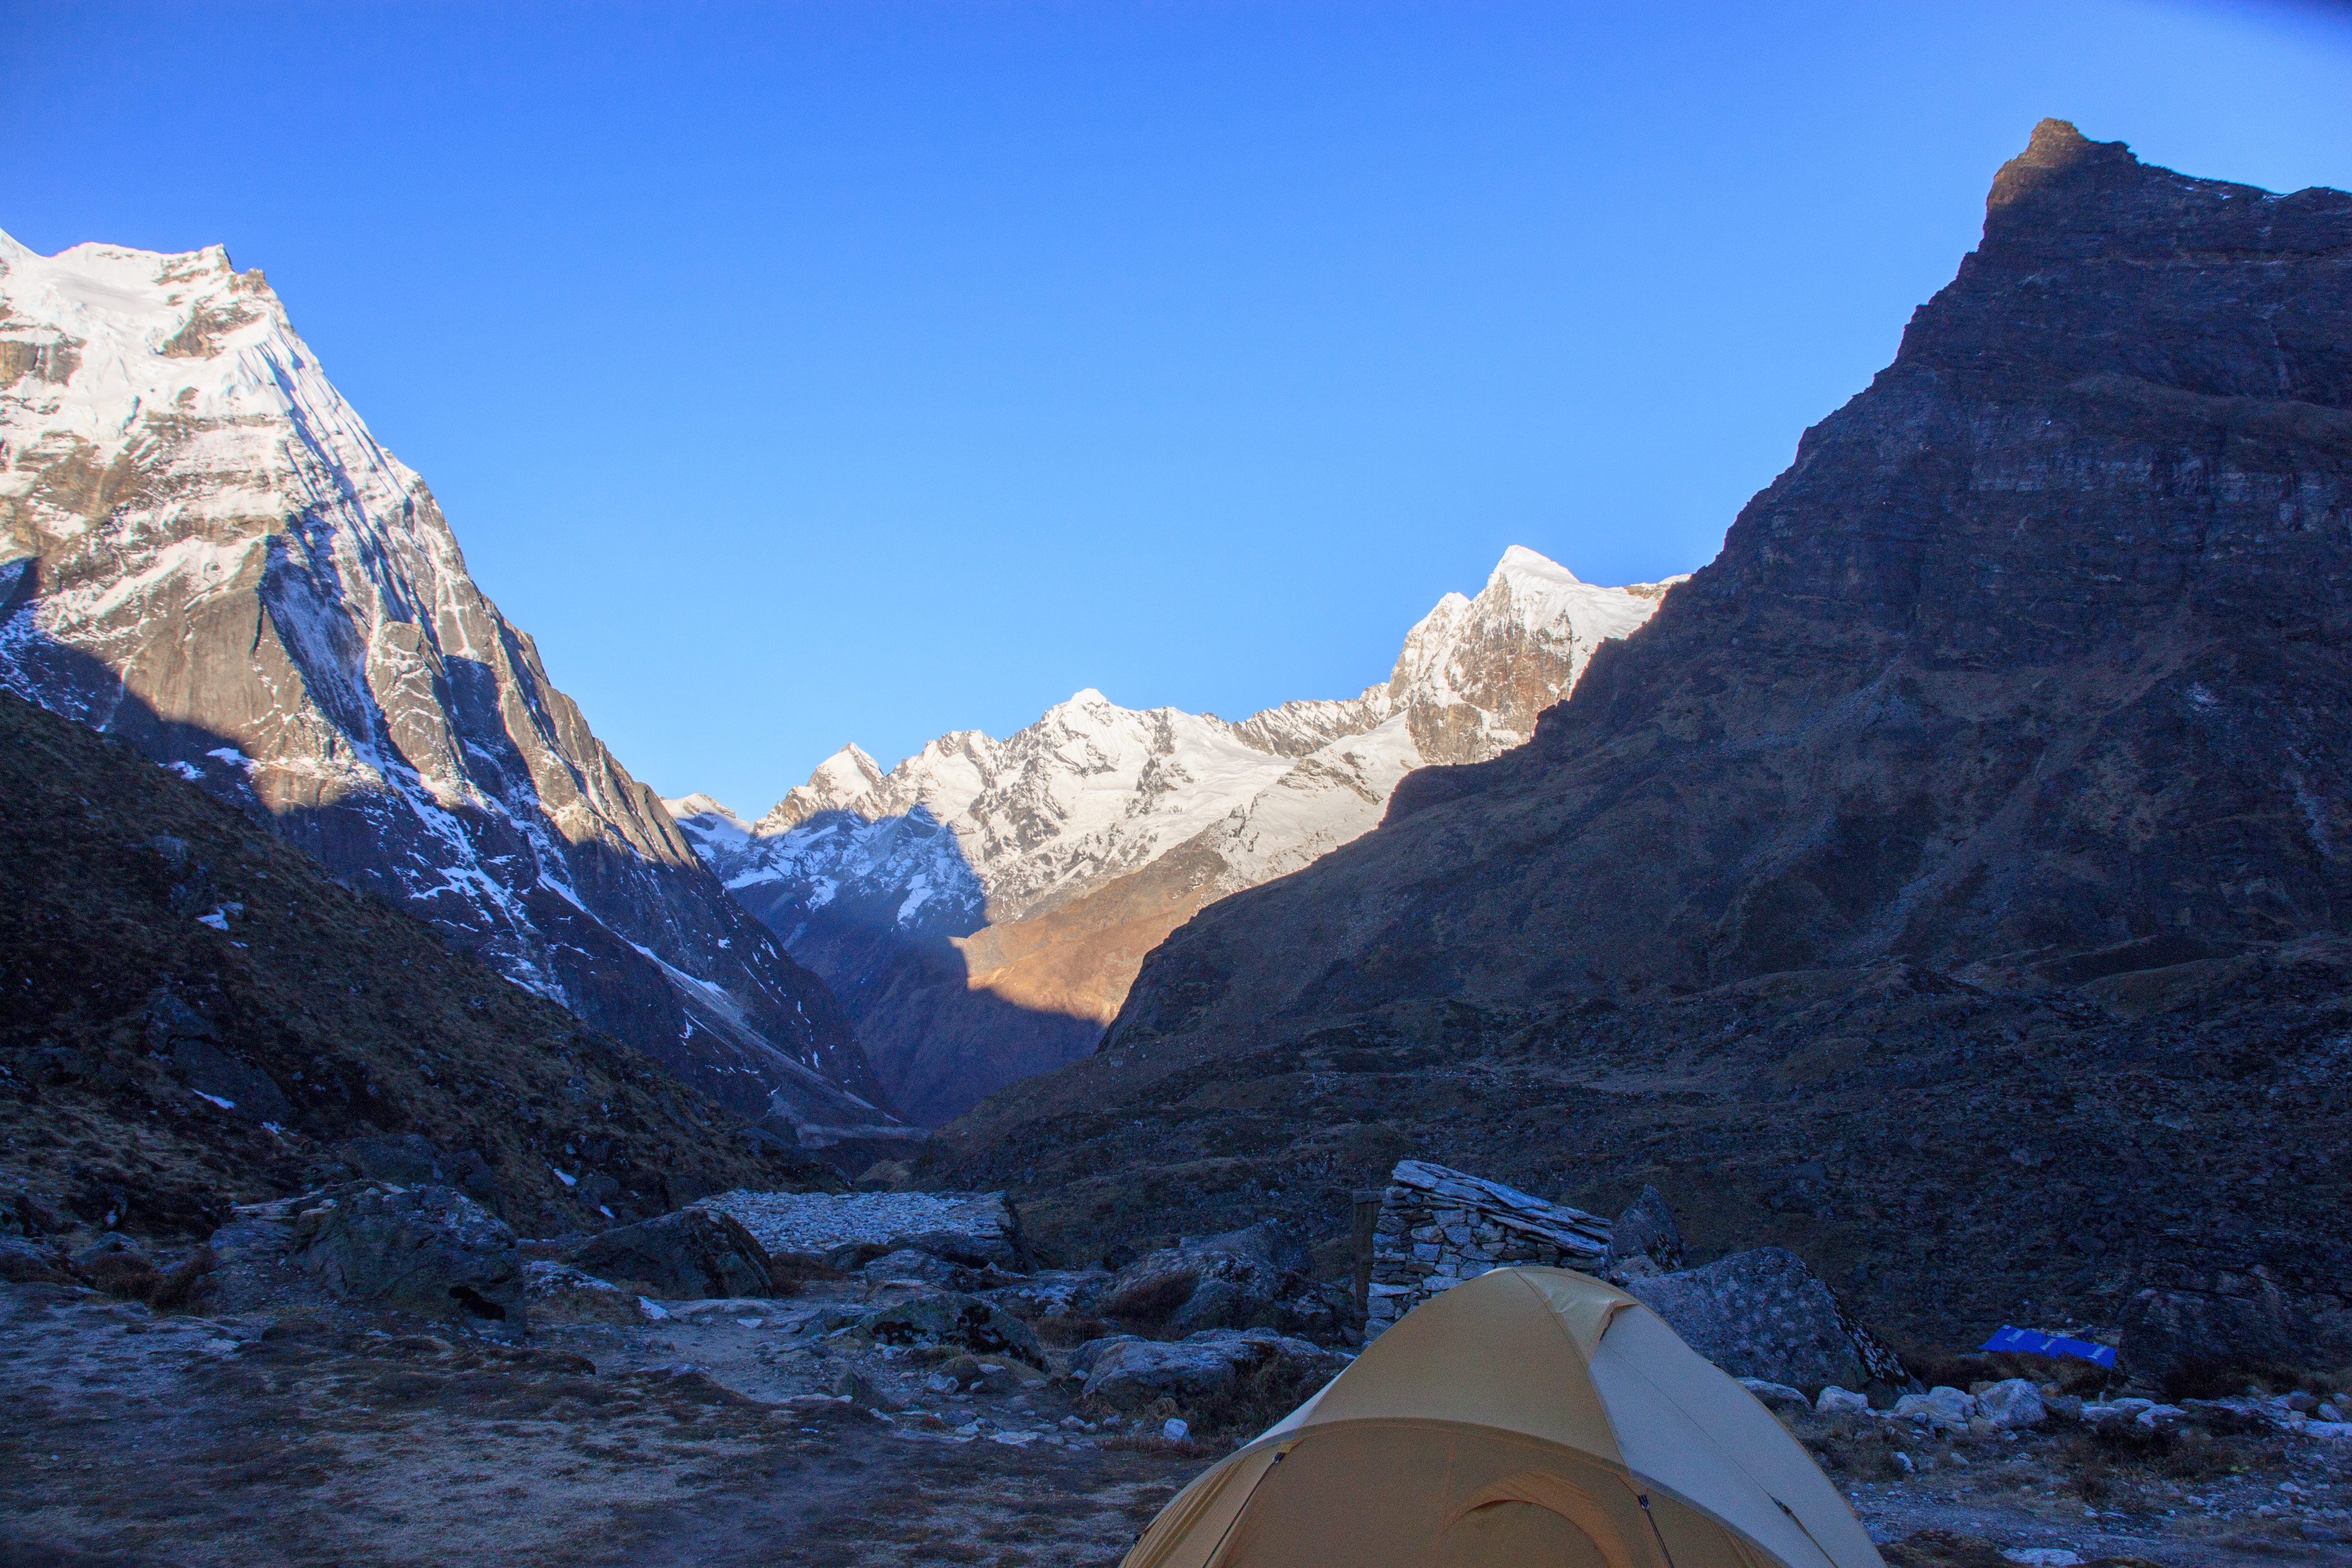 Early morning view from our camp site at Khare